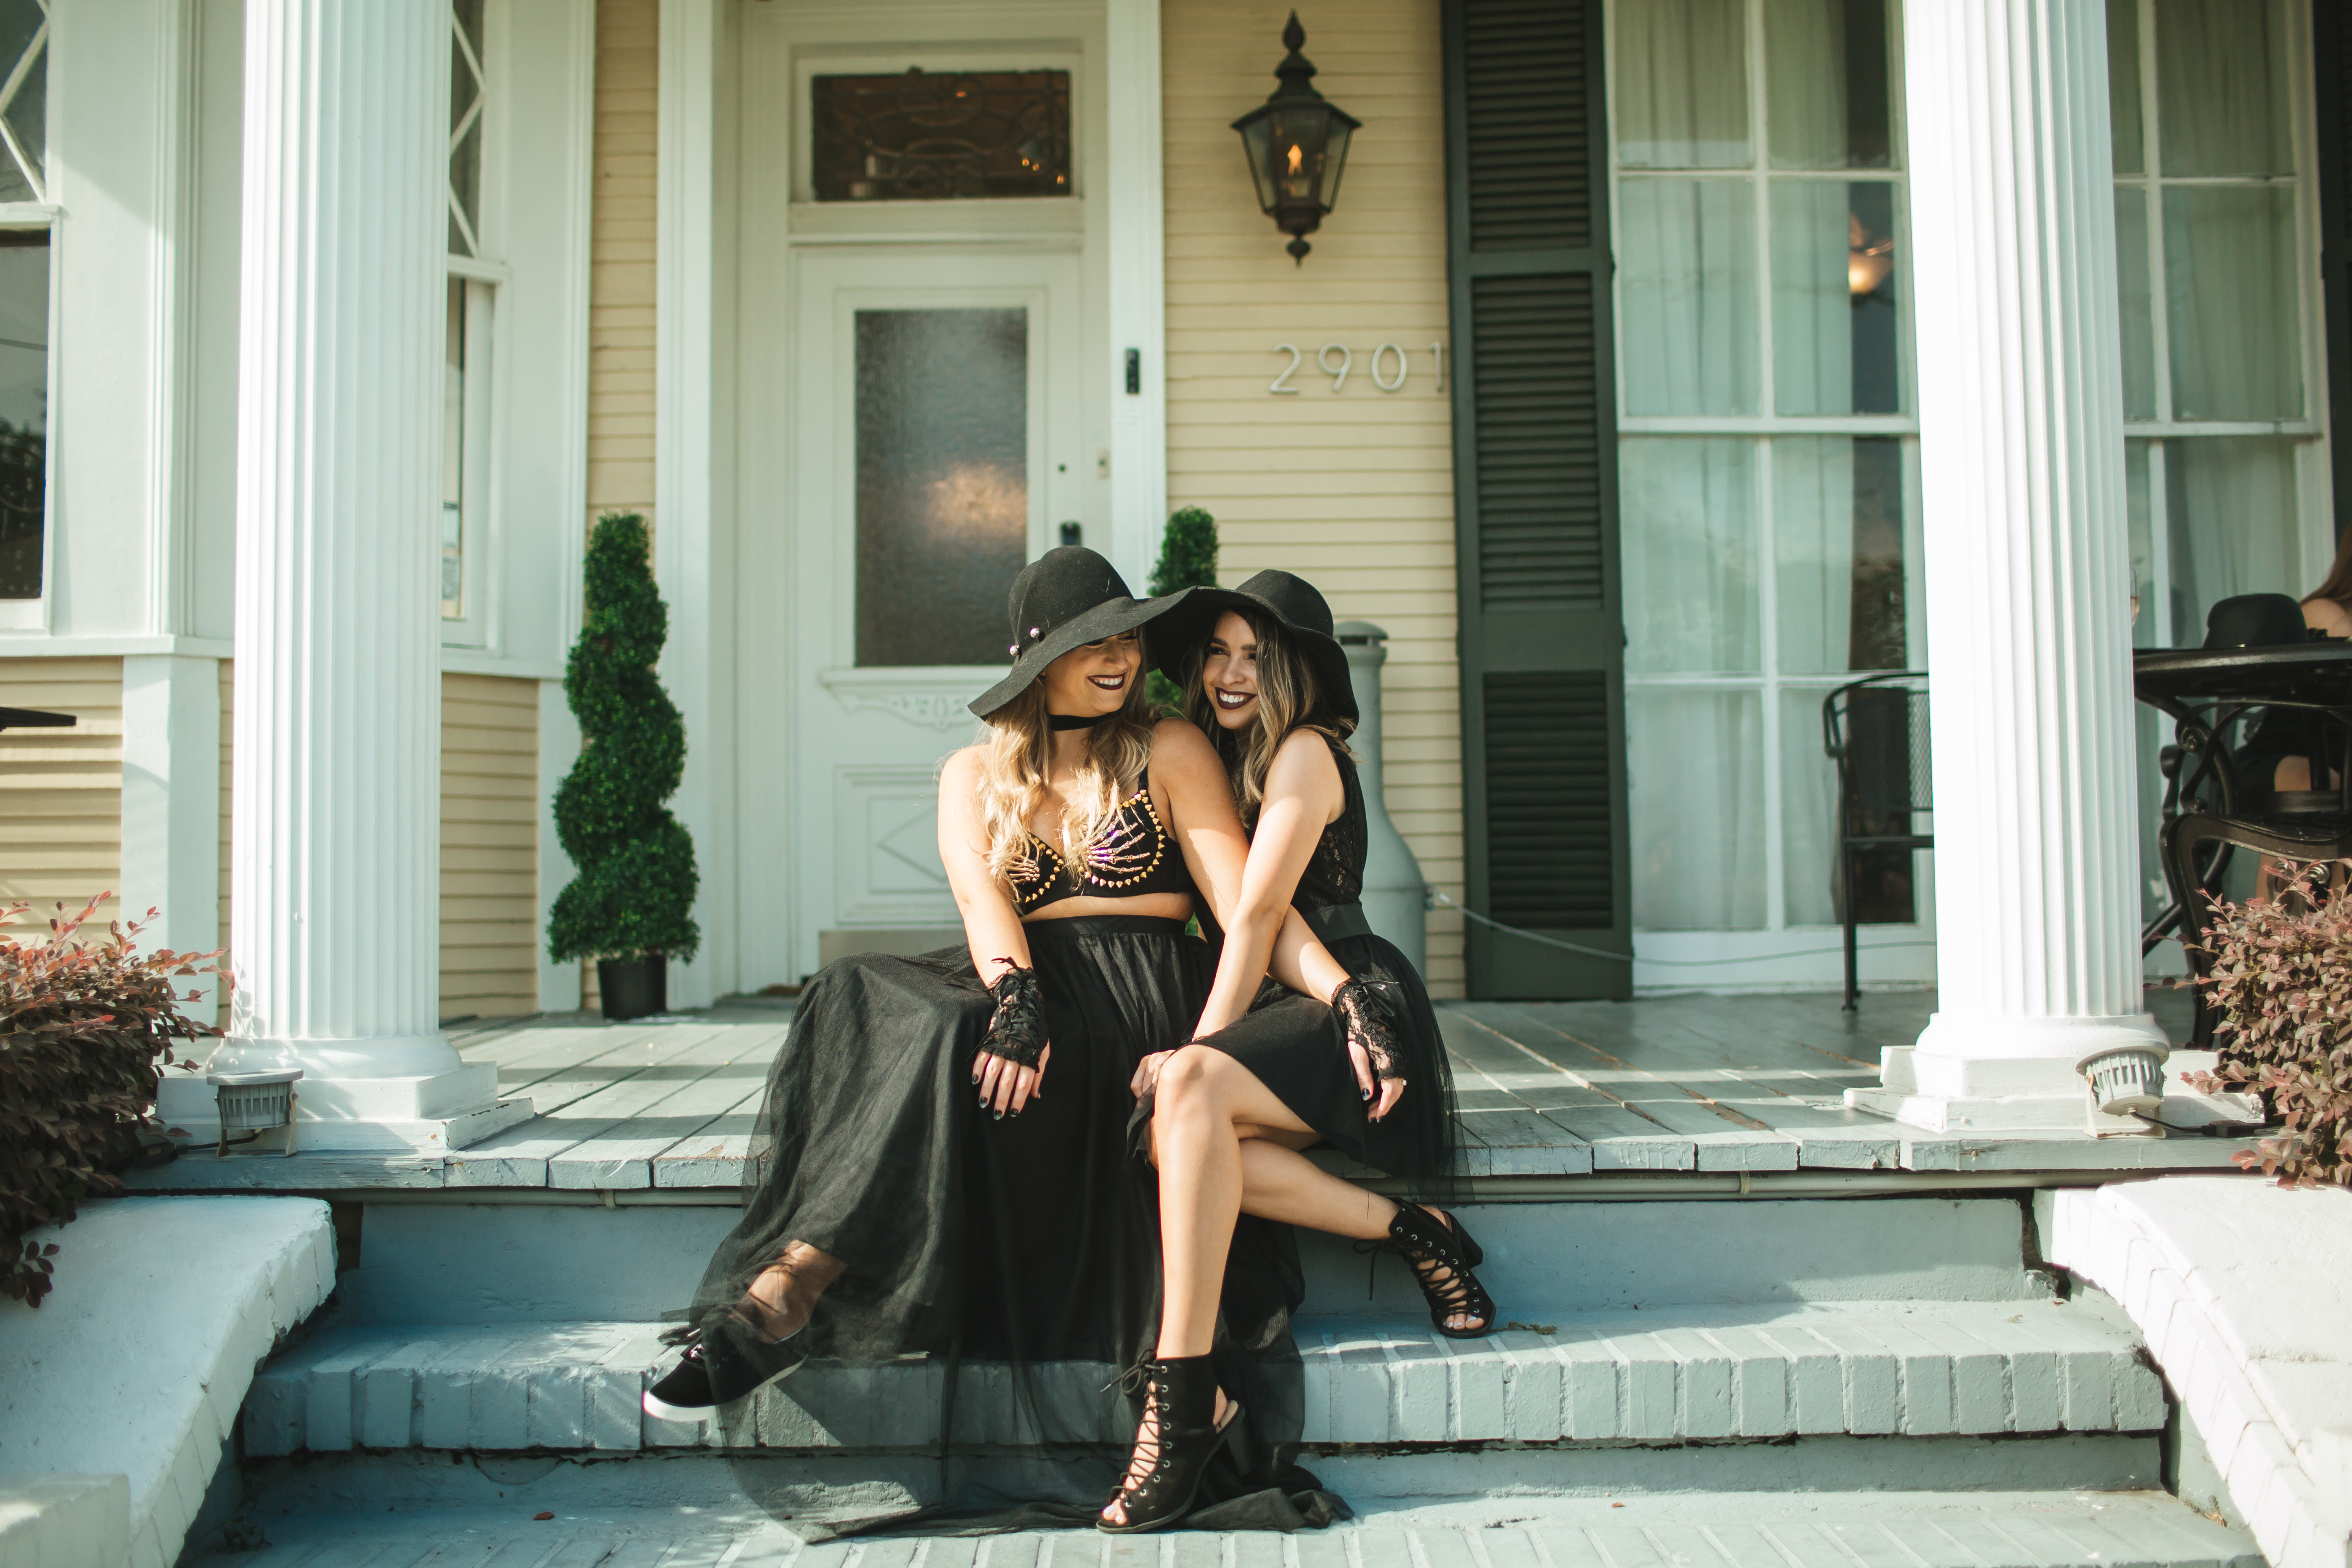 Bride Rachel and her bridesmaid cristina posing in front of their haunted mansion in New Orleans.